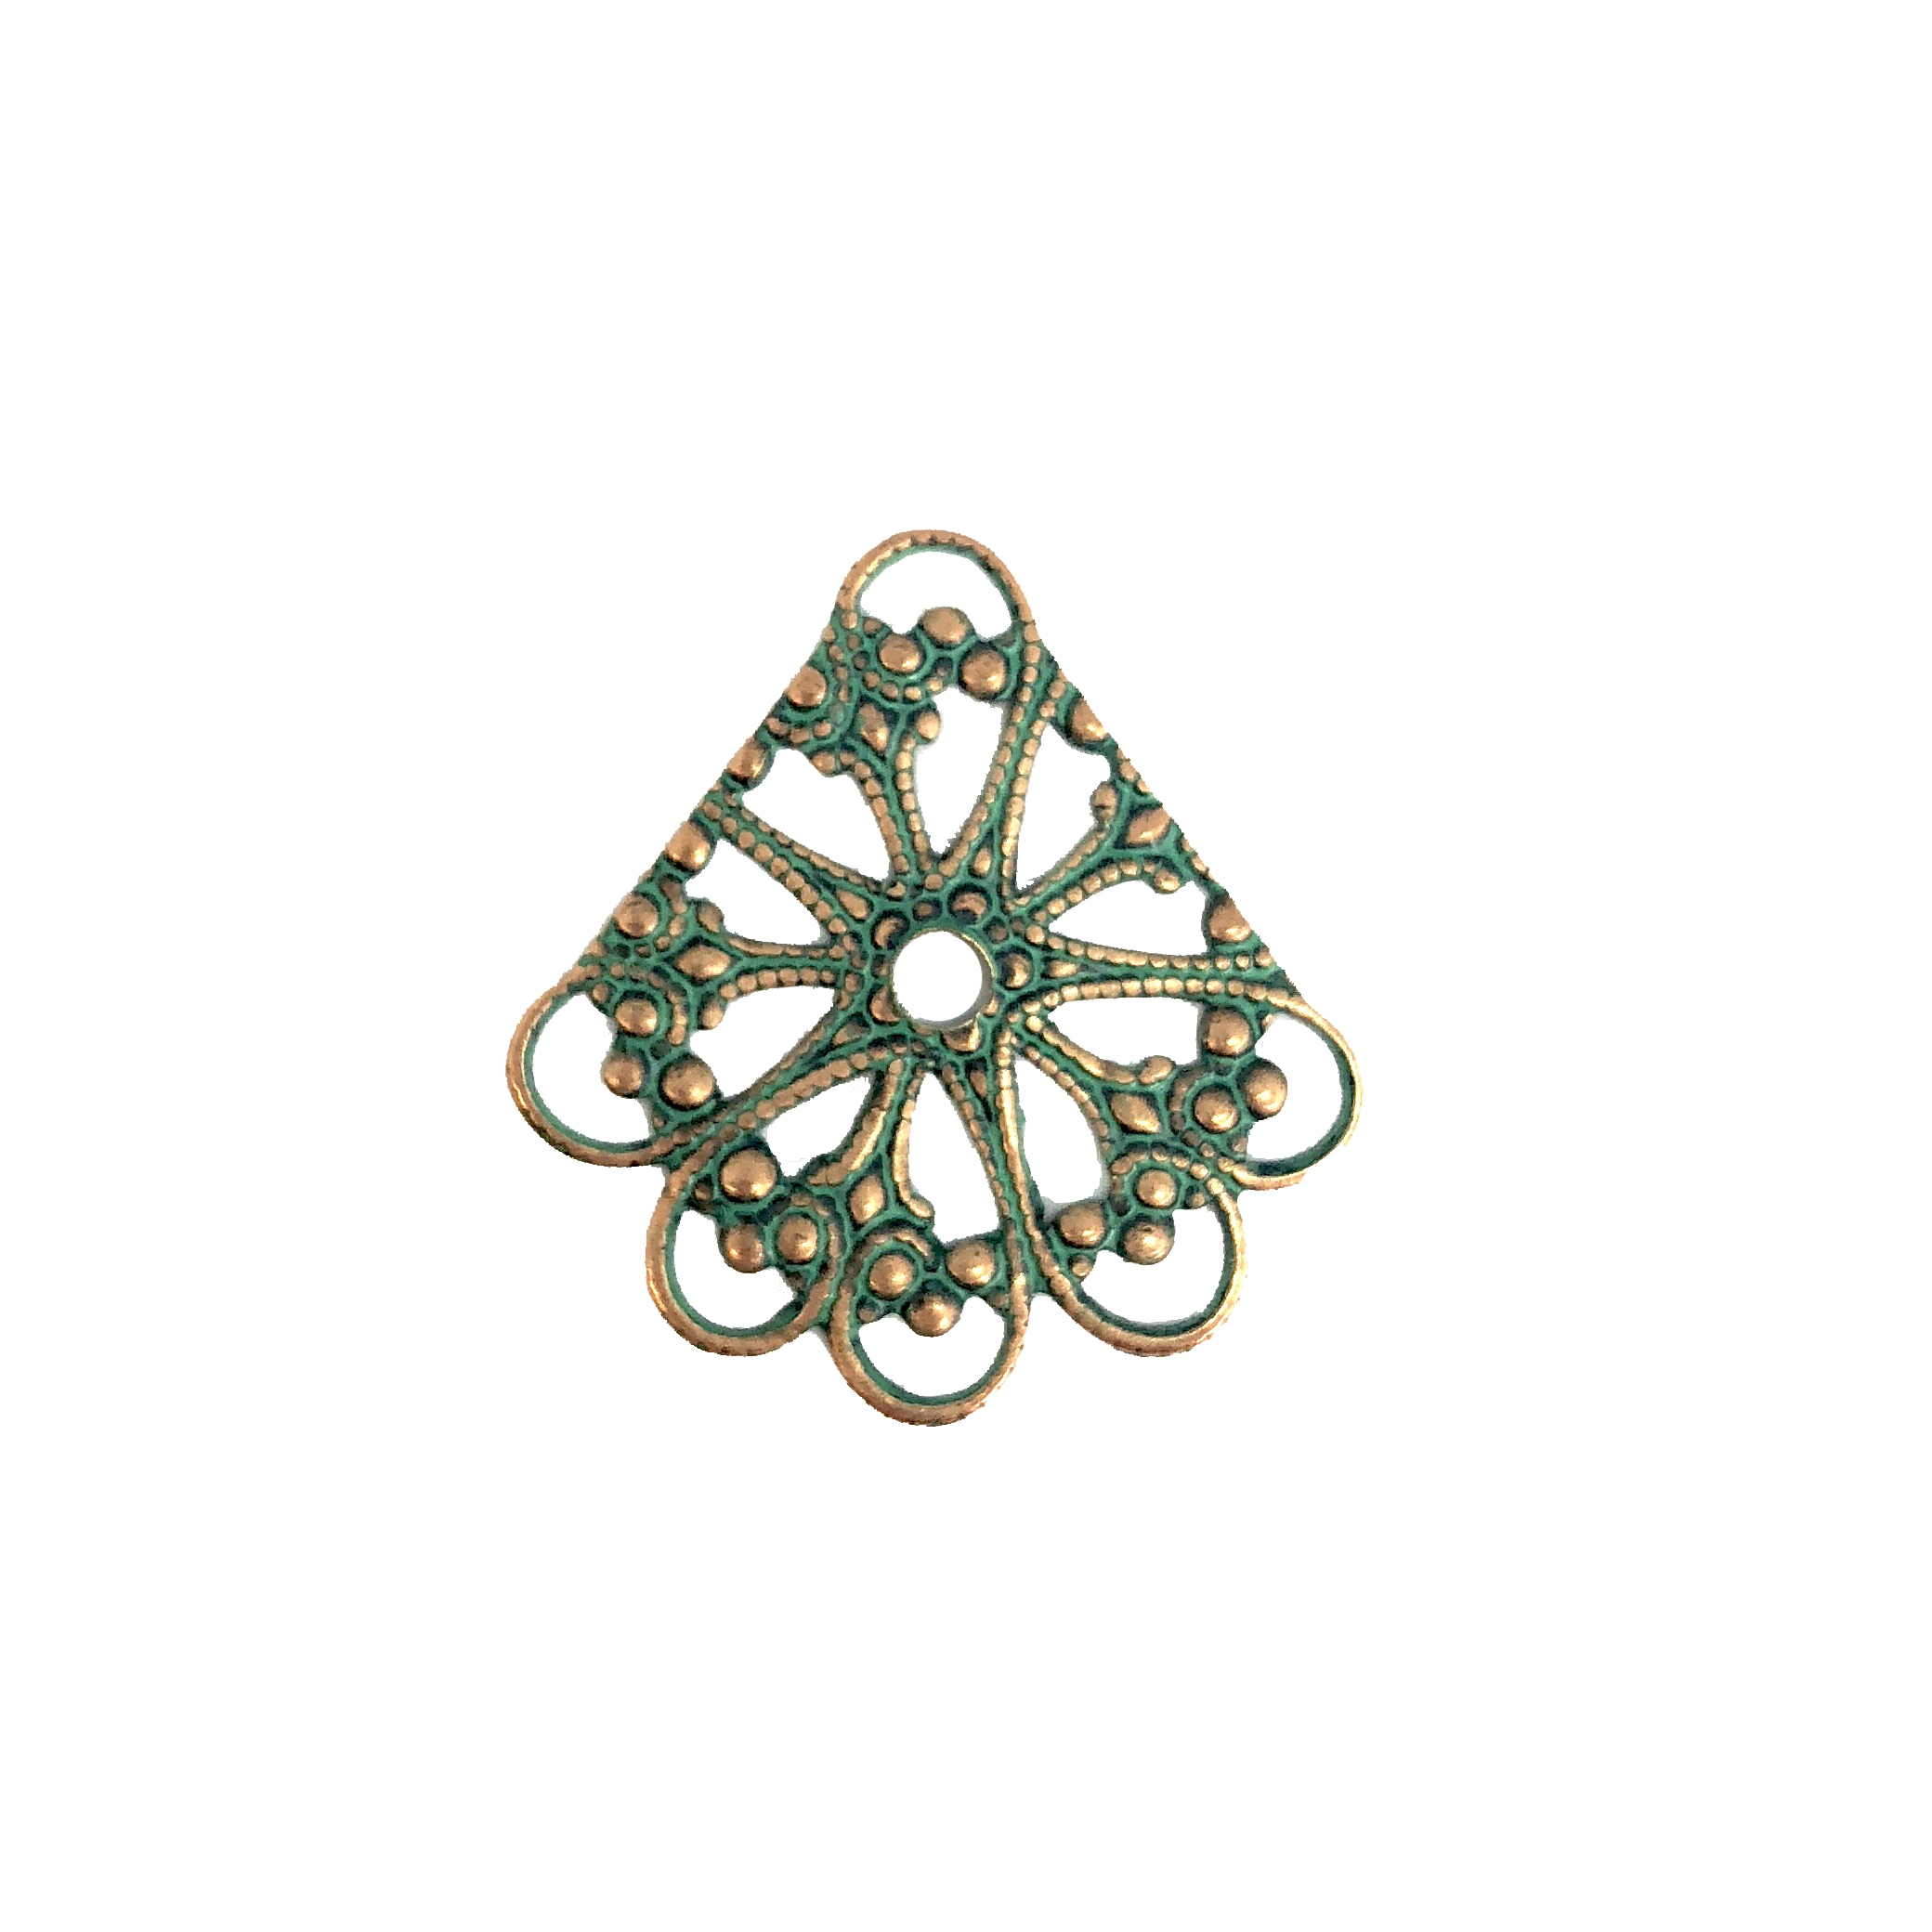 filigree drop, aqua copper patina, 08227, gypsy drop, beading filigree, brass jewelry parts, vintage jewelry supplies, jewelry making supplies, bsueboutiques, aqua, beading supplies, ear drop, copper